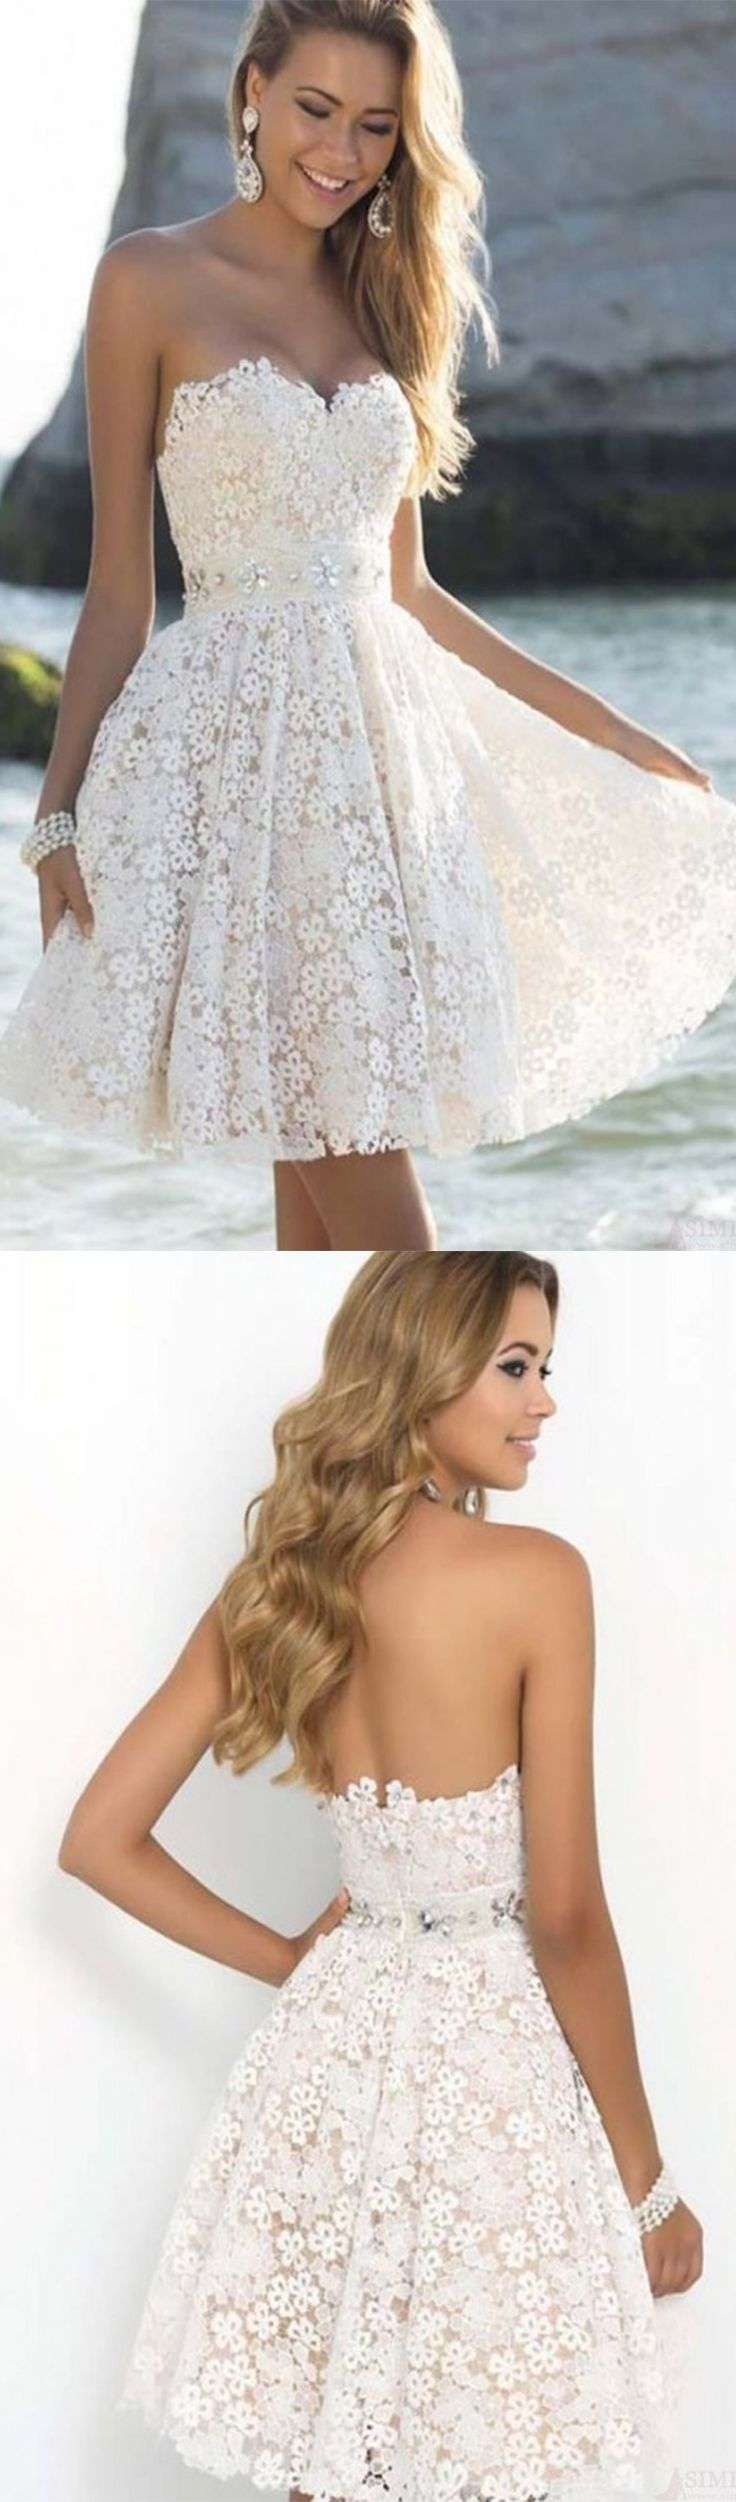 Elegant Sweatheart Knee Length Short White Homecoming Prom Party Dresses